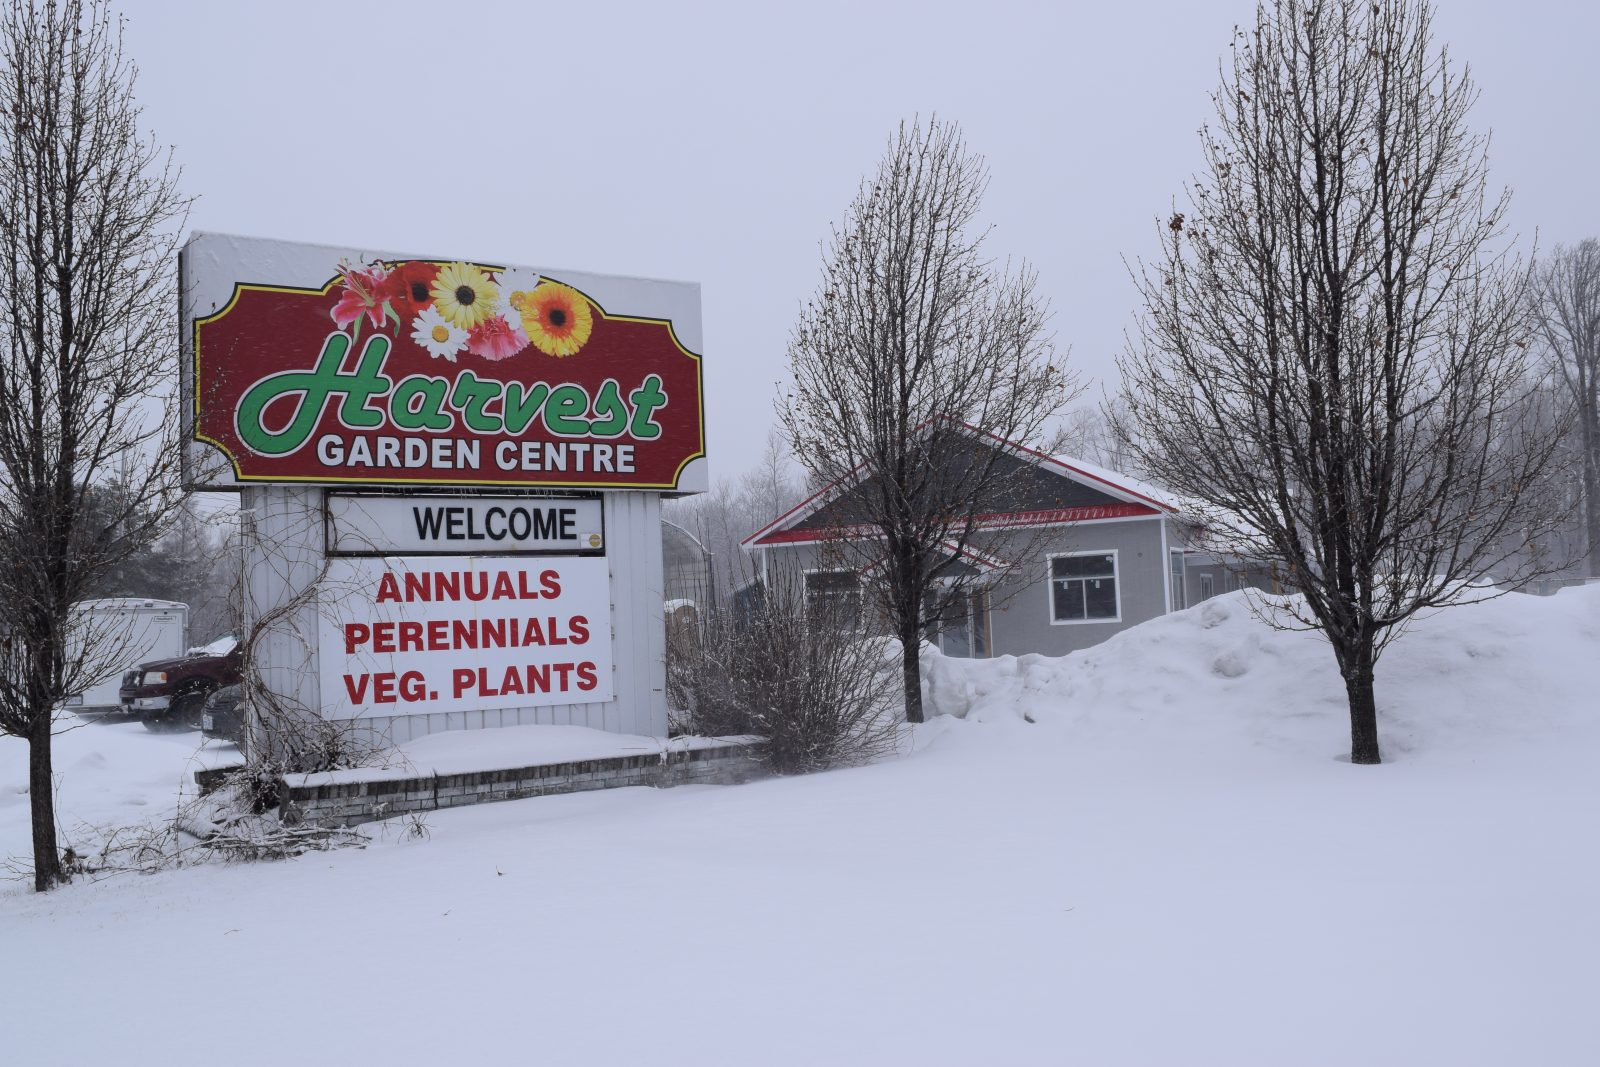 New market coming to Harvest Garden Centre